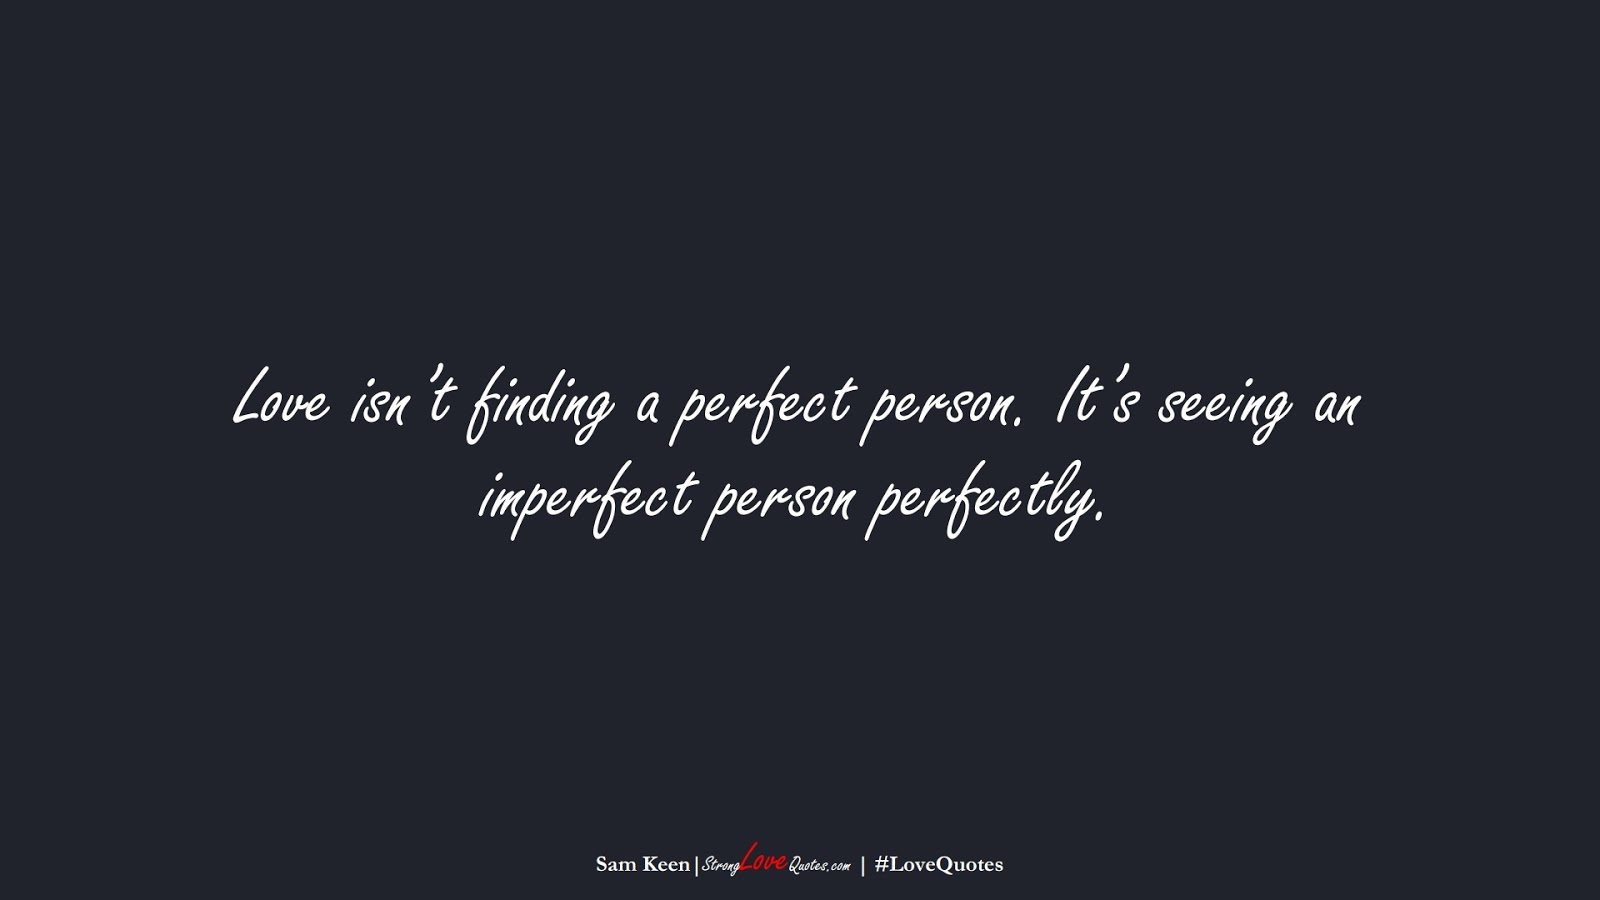 Love isn't finding a perfect person. It's seeing an imperfect person perfectly. (Sam Keen);  #LoveQuotes